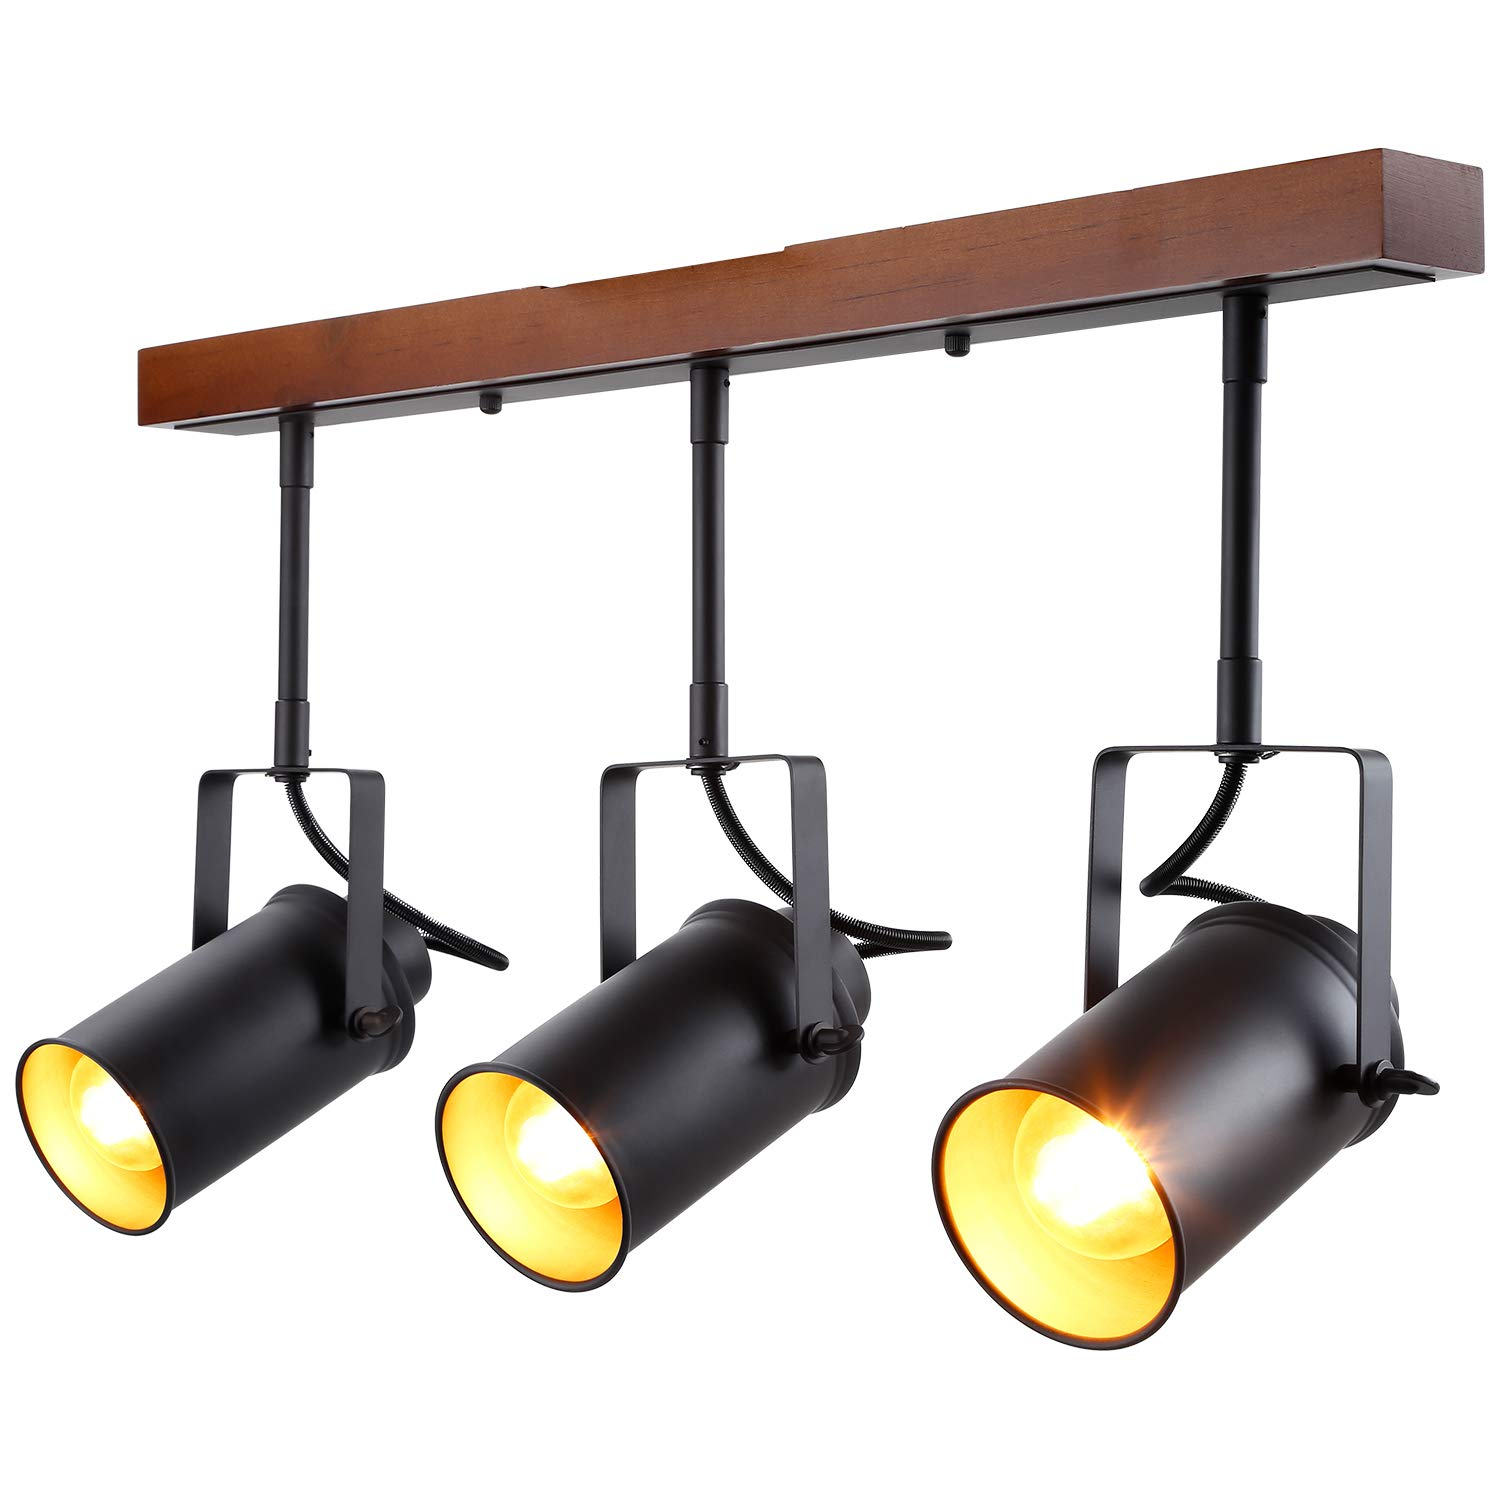 LEONLITE Track Light with Wood Ceiling Base, 3-in-1 Spotlight, Retro Industrial Style, 3 Bulbs Included, for Dining Rooms, Kitchens, Living Rooms, Restaurants, Pubs, 5 Years Warranty by LEONLITE (Image #1)